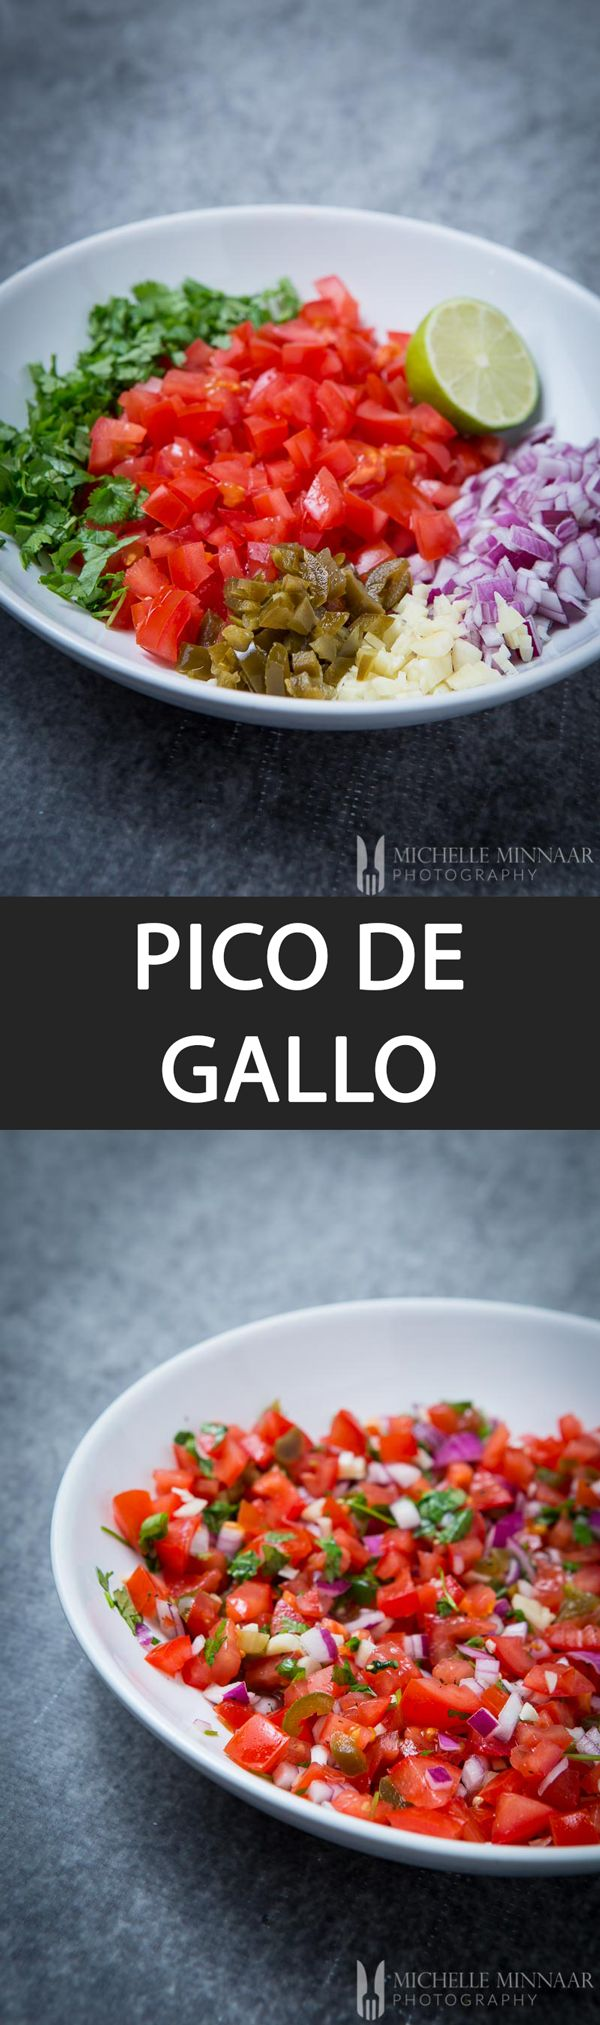 Pico de gallo, also commonly referred to as #salsa fresca (fresh salsa), is an authentic #Mexican dish which is basically a tomato salsa. It is made up of traditional ingredients found in Mexico such as #cilantro, chopped tomatoes, fresh serrano #peppers or jalapenos, onion, salt and lime juice. Best served immediately. #recipe #nonnom #foodporn